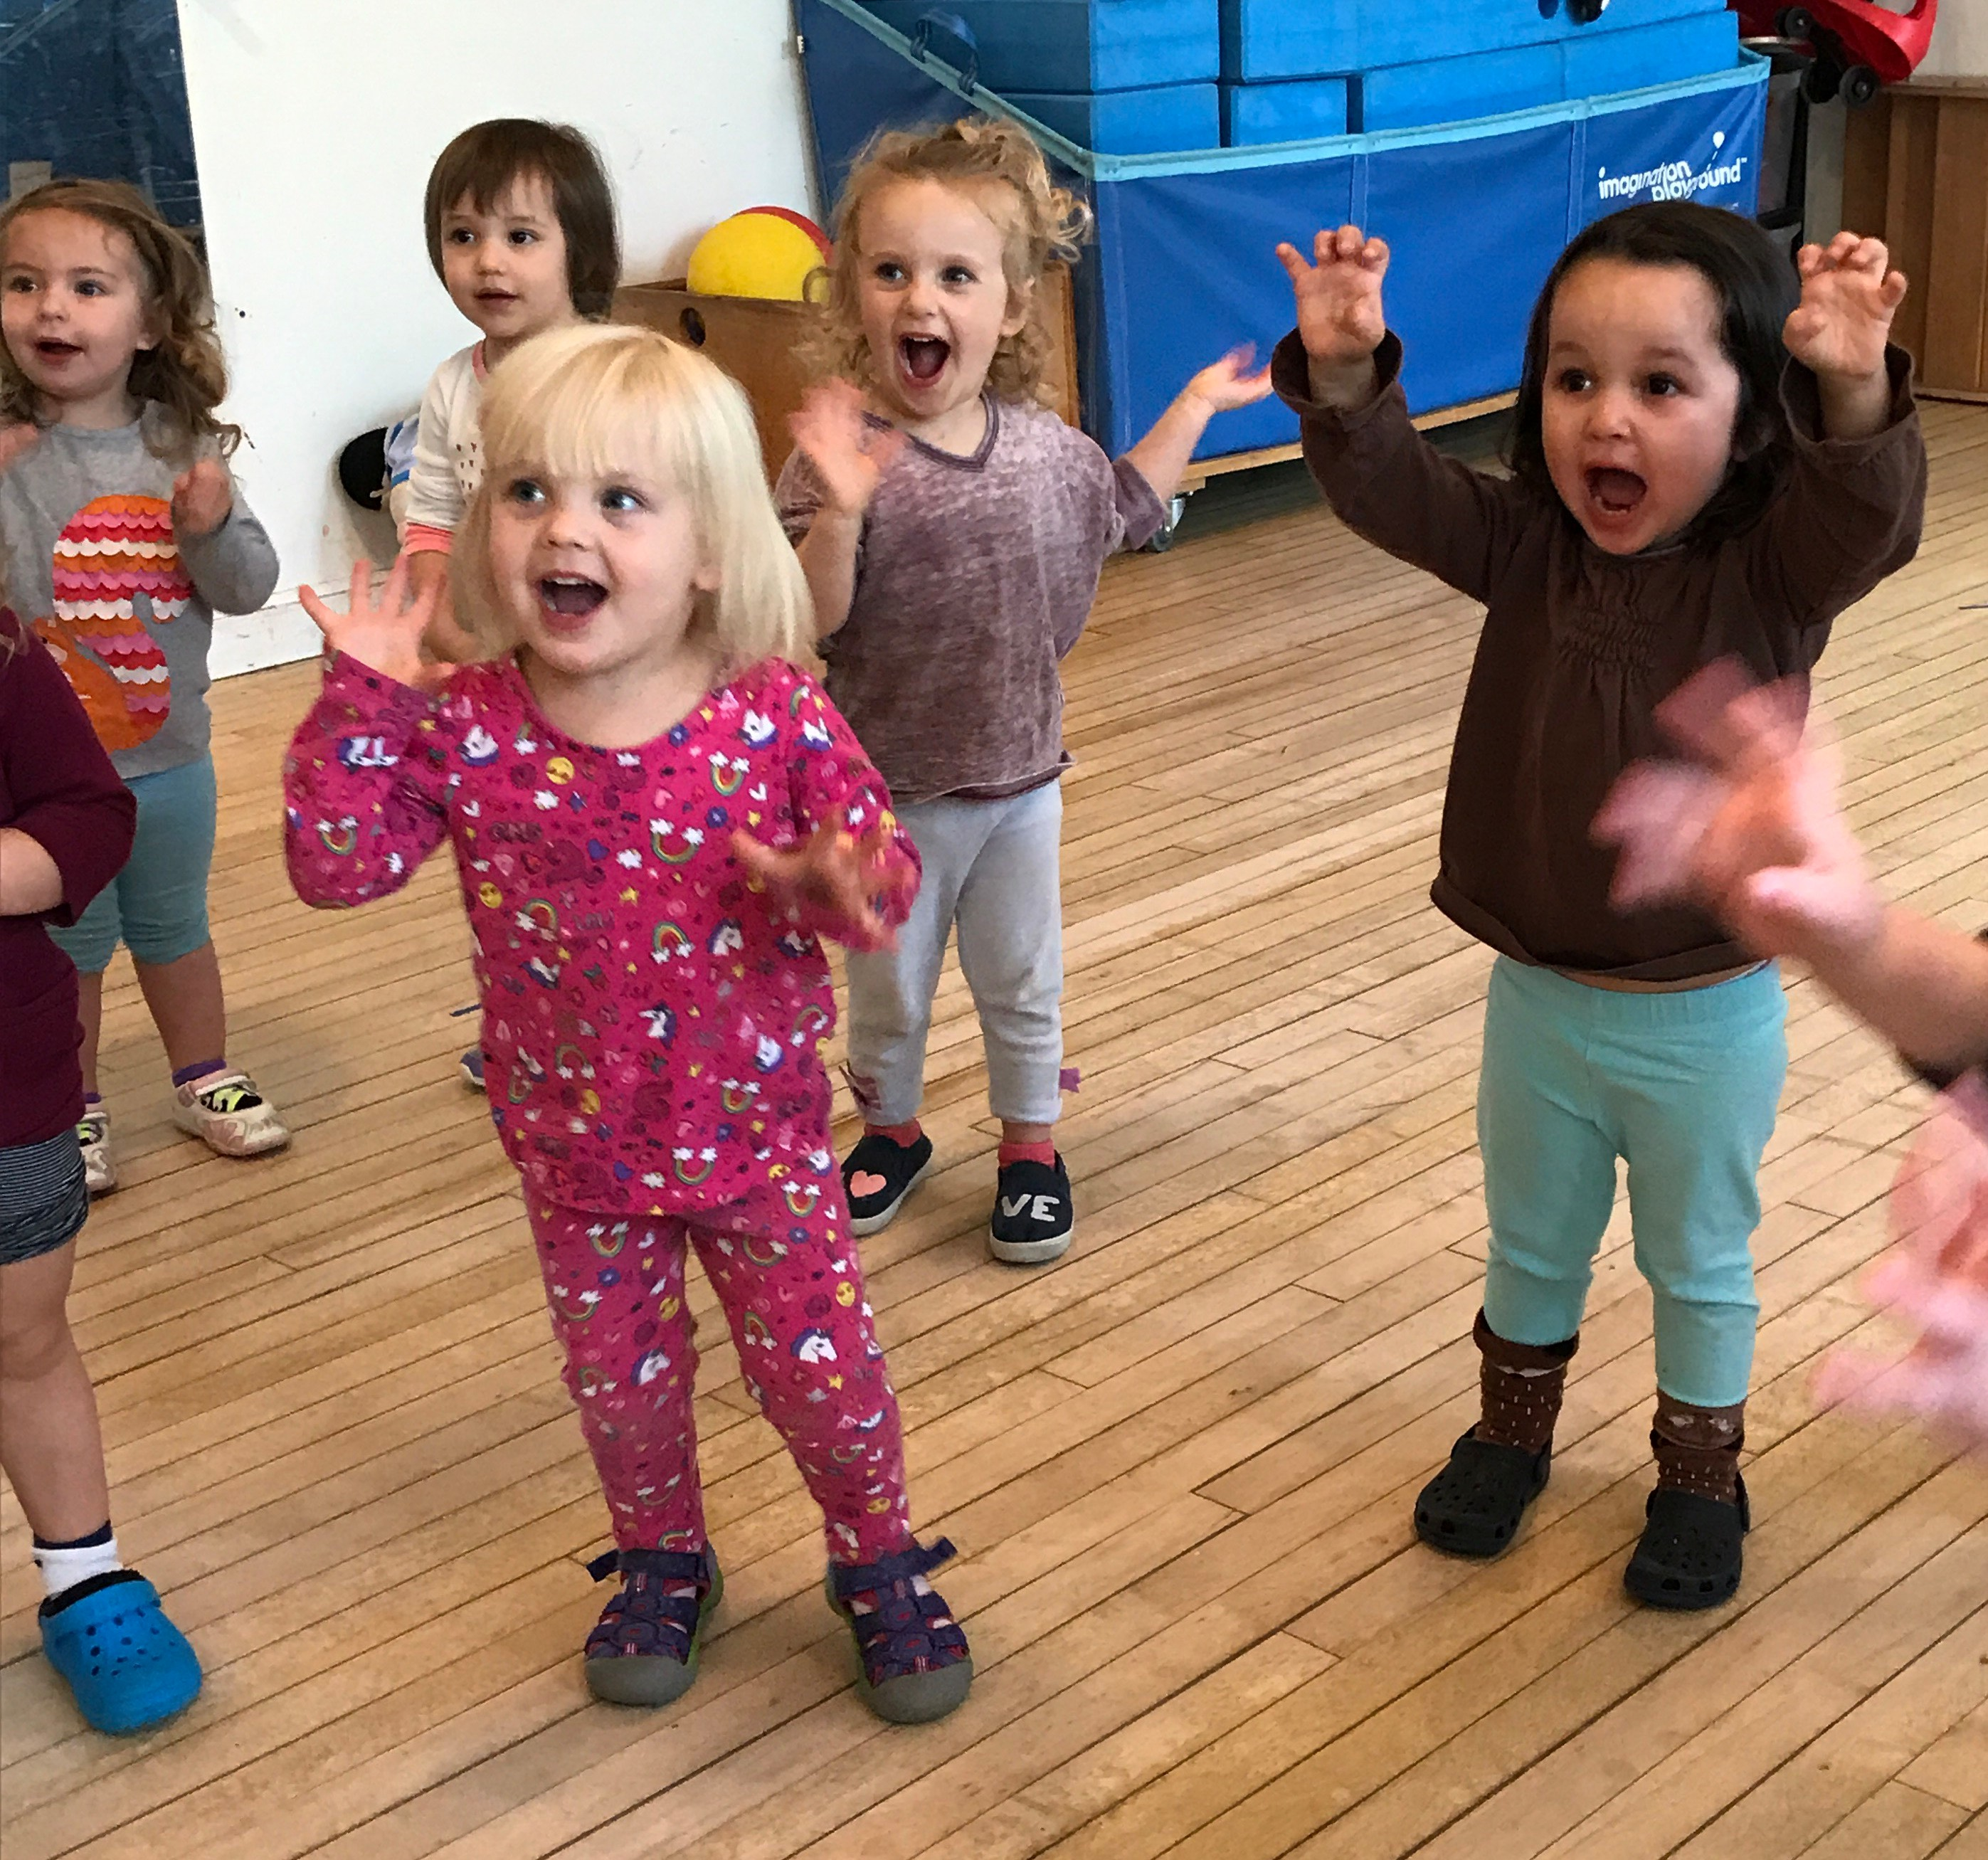 Creative Movement and Drama for Toddlers: Valley Performance Playground's Movers and Shakers class comes to the library